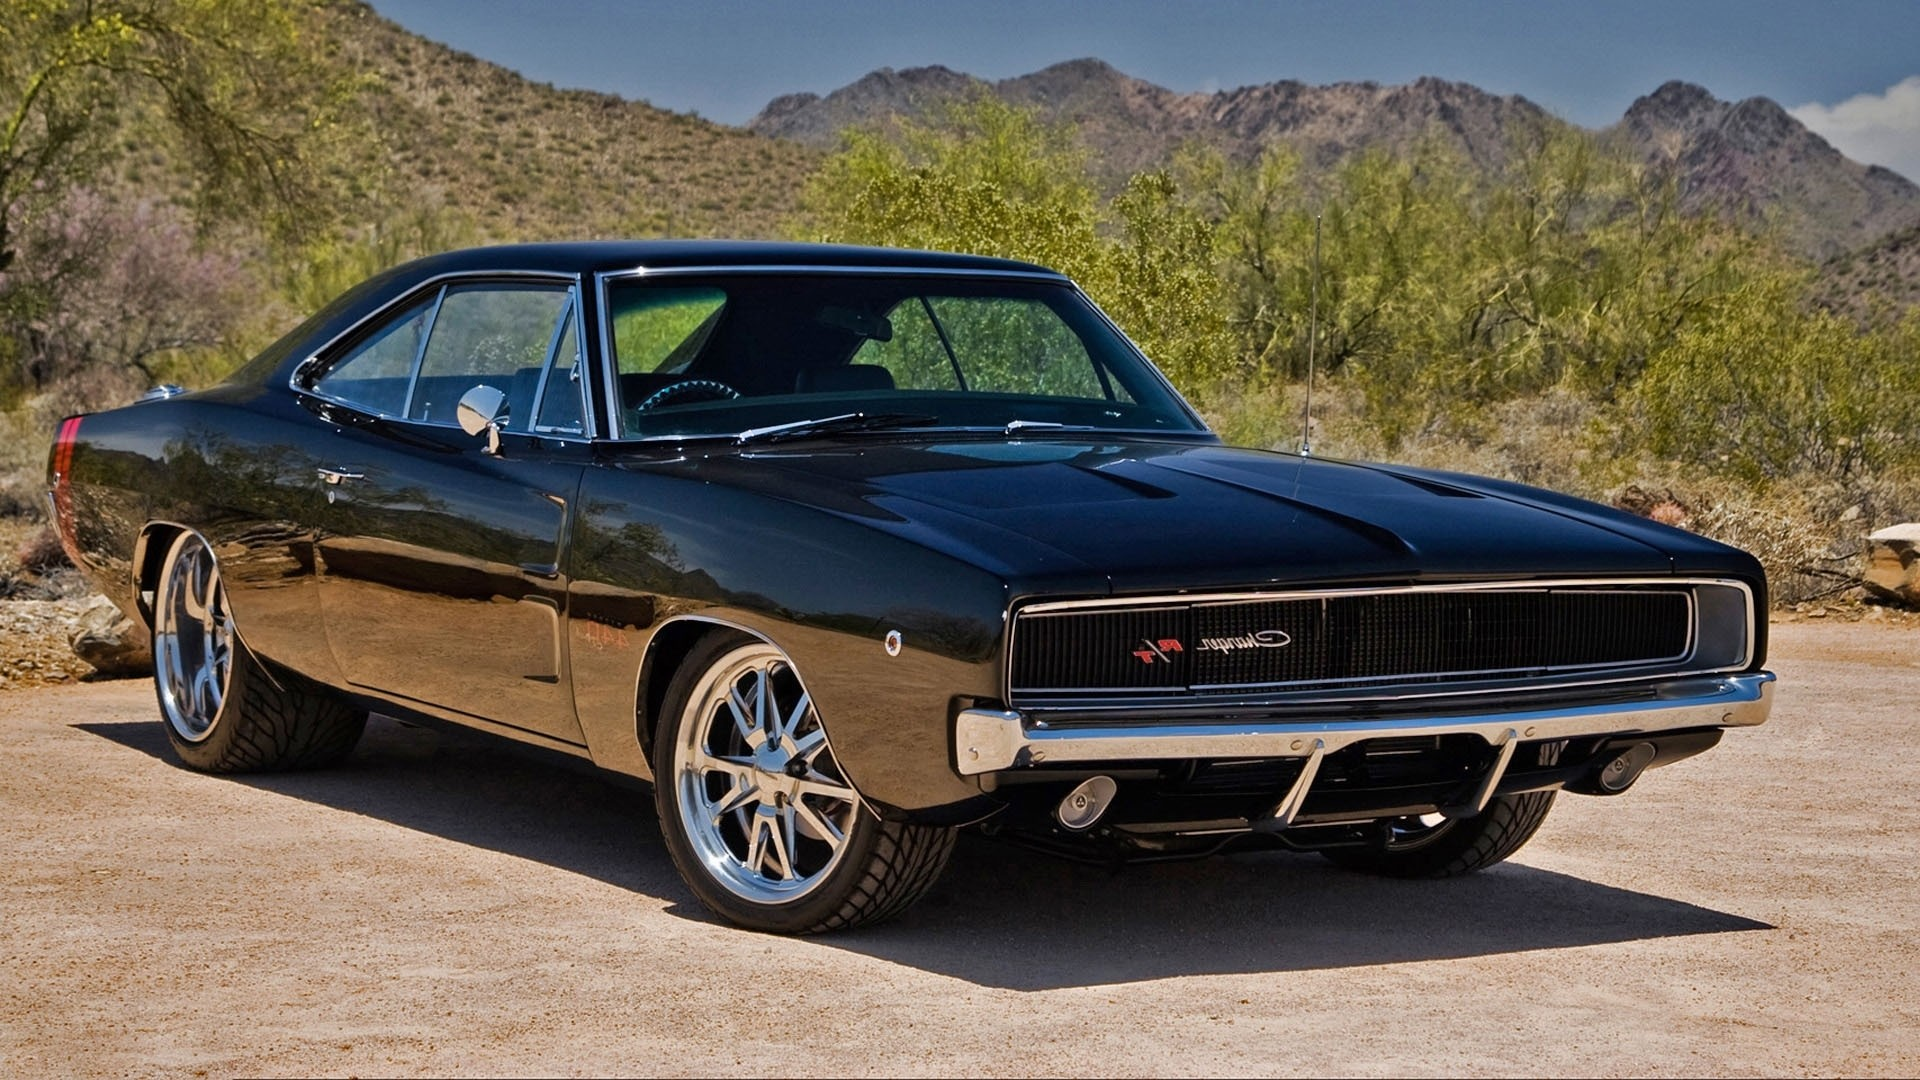 1970 dodge charger rt wallpaper 71 images. Black Bedroom Furniture Sets. Home Design Ideas